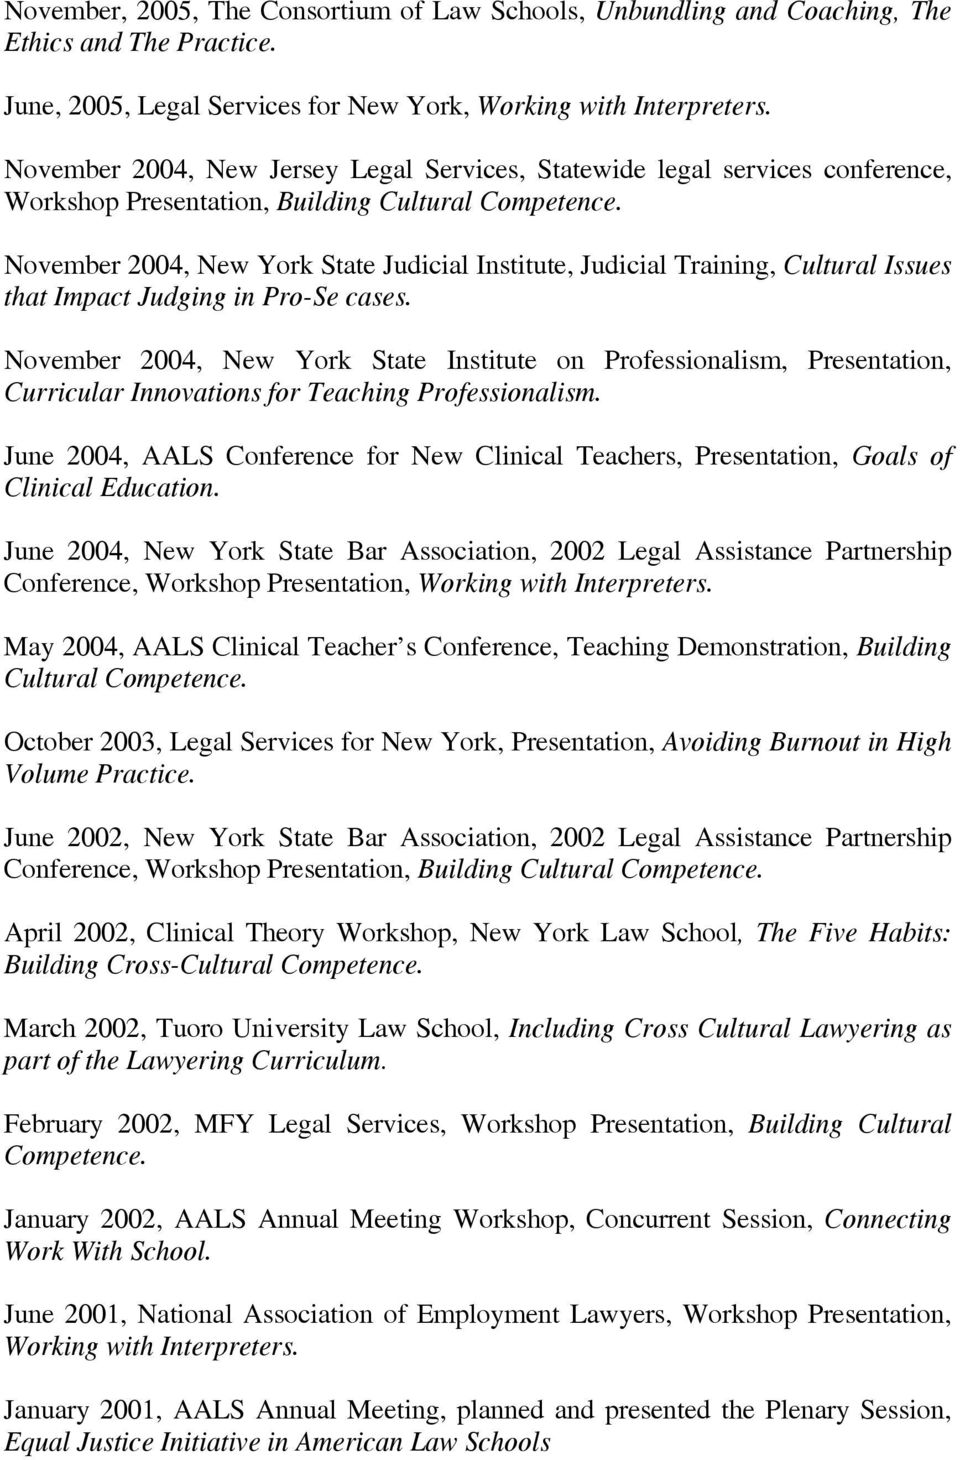 November 2004, New York State Judicial Institute, Judicial Training, Cultural Issues that Impact Judging in Pro-Se cases.